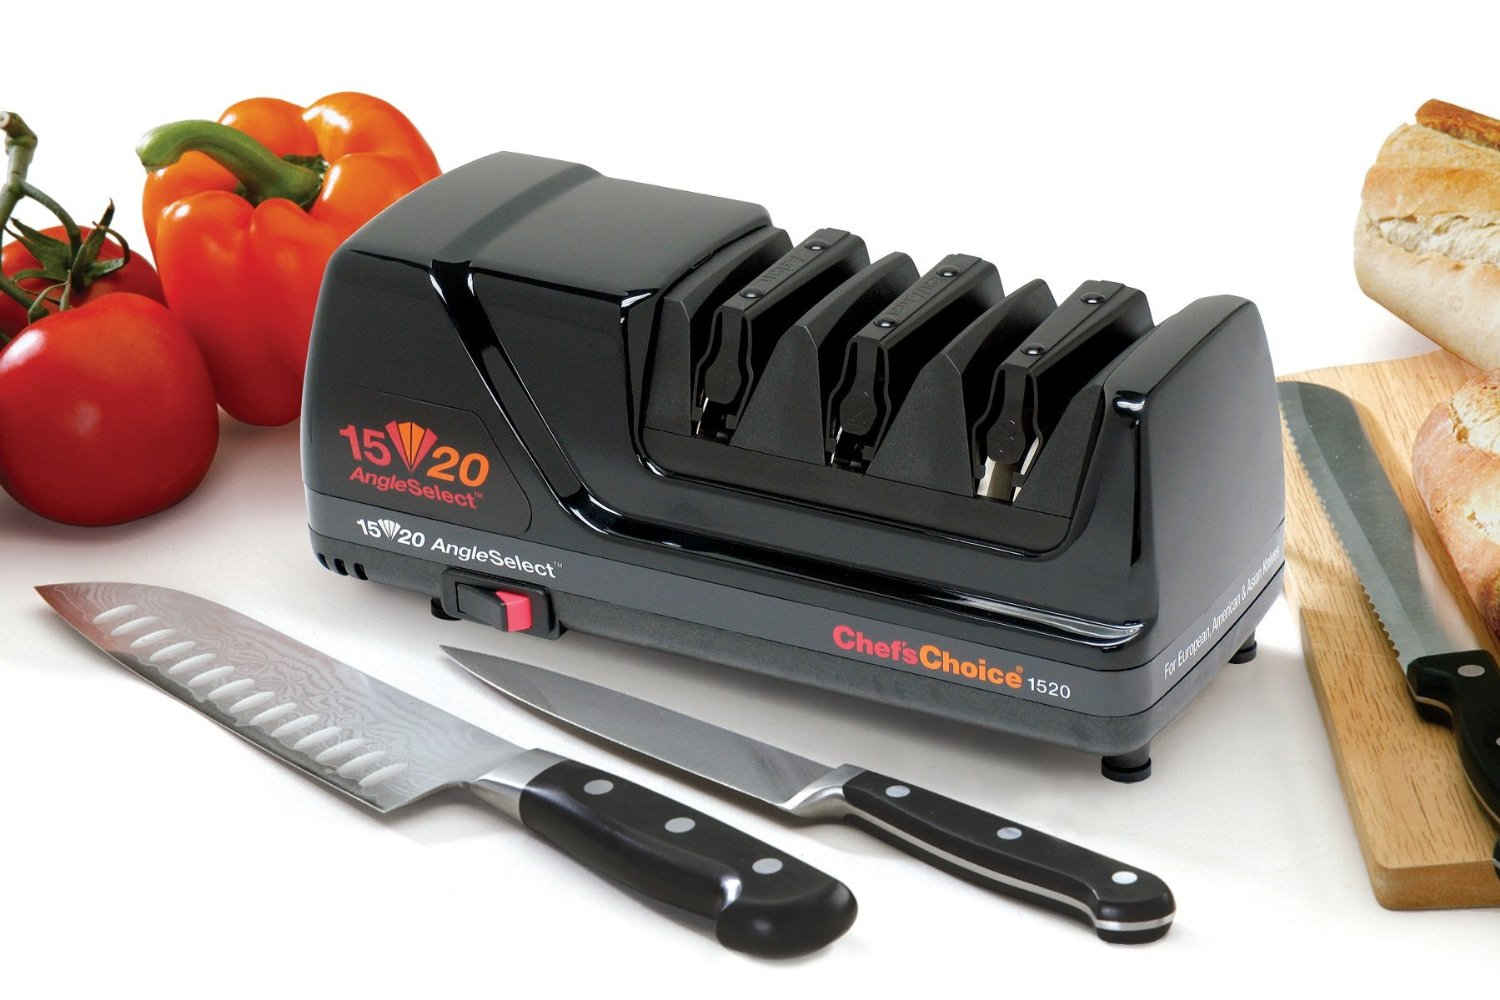 The Device Features A 3 Year Warranty By Chef's Choice